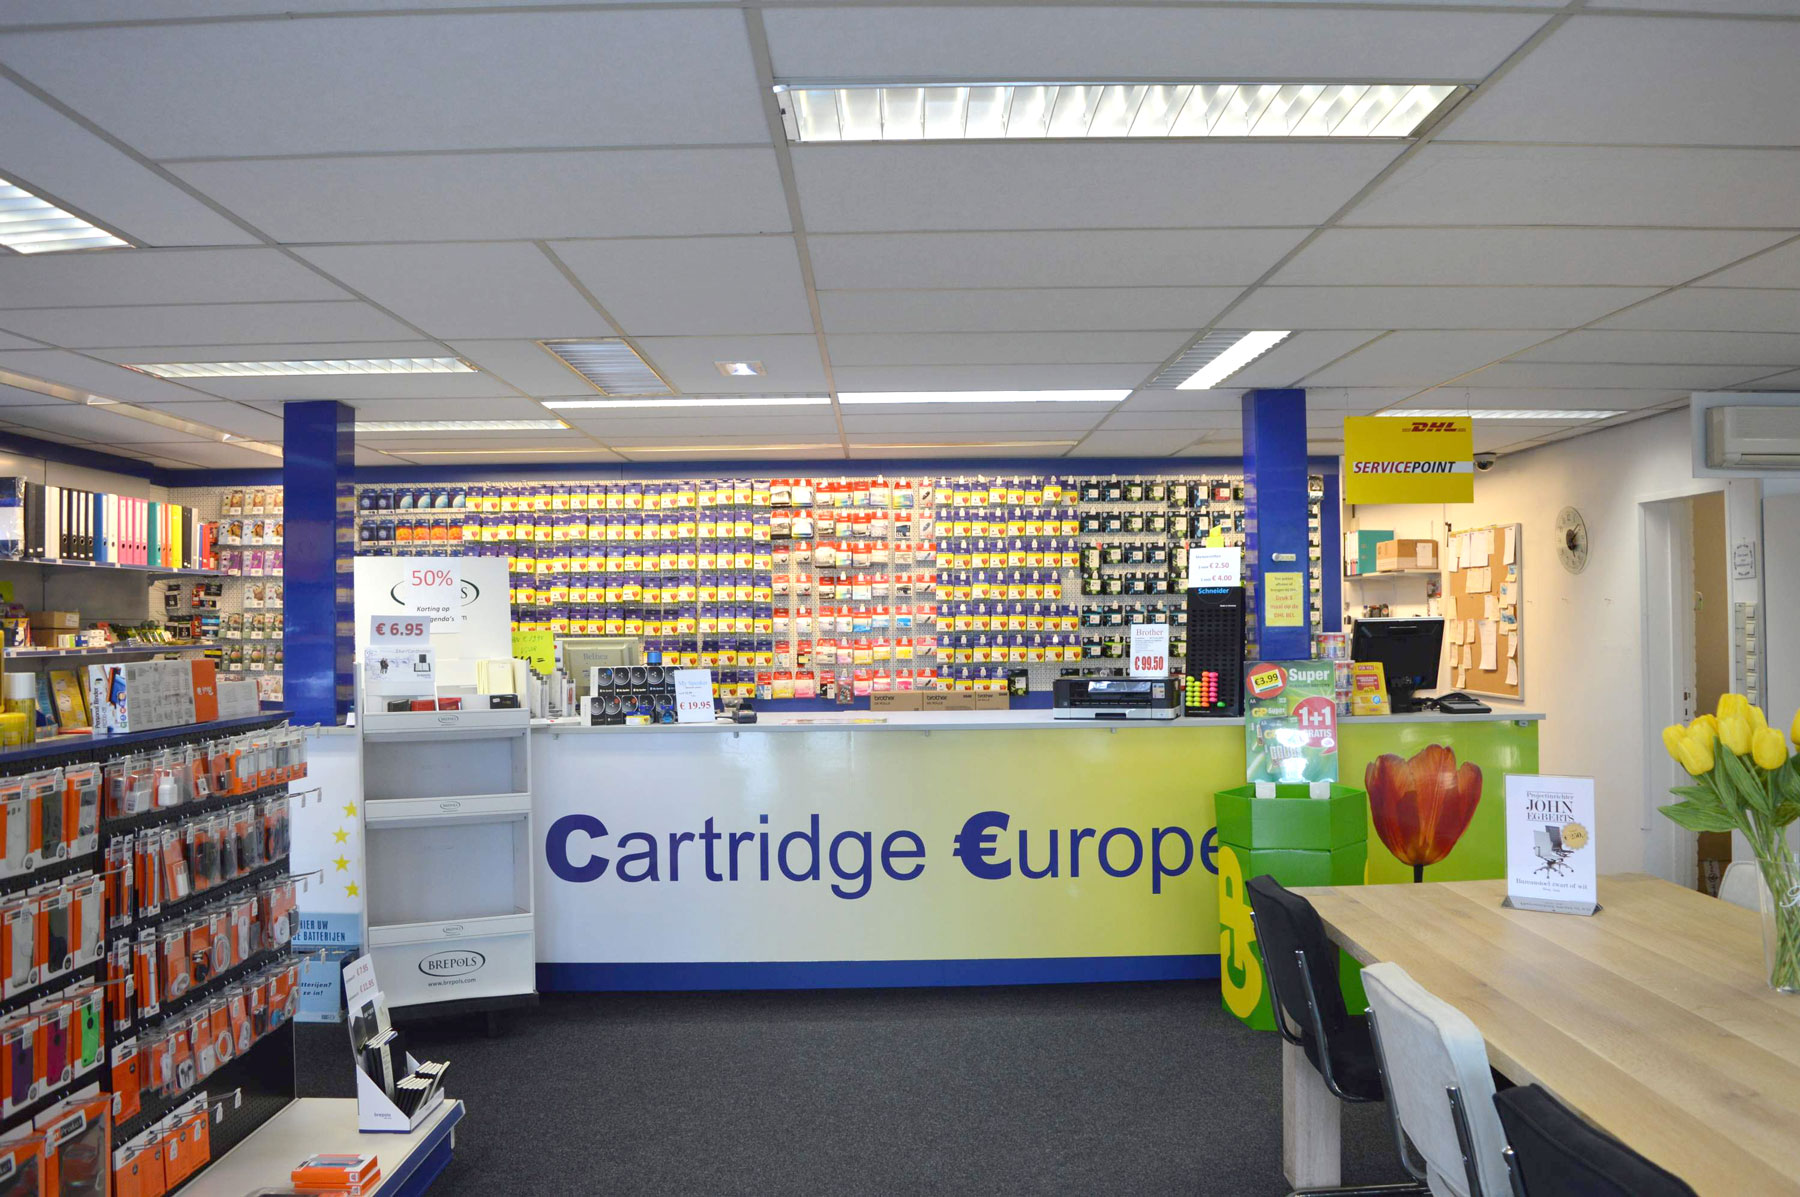 Winkel-cartridge-europe-zwolle